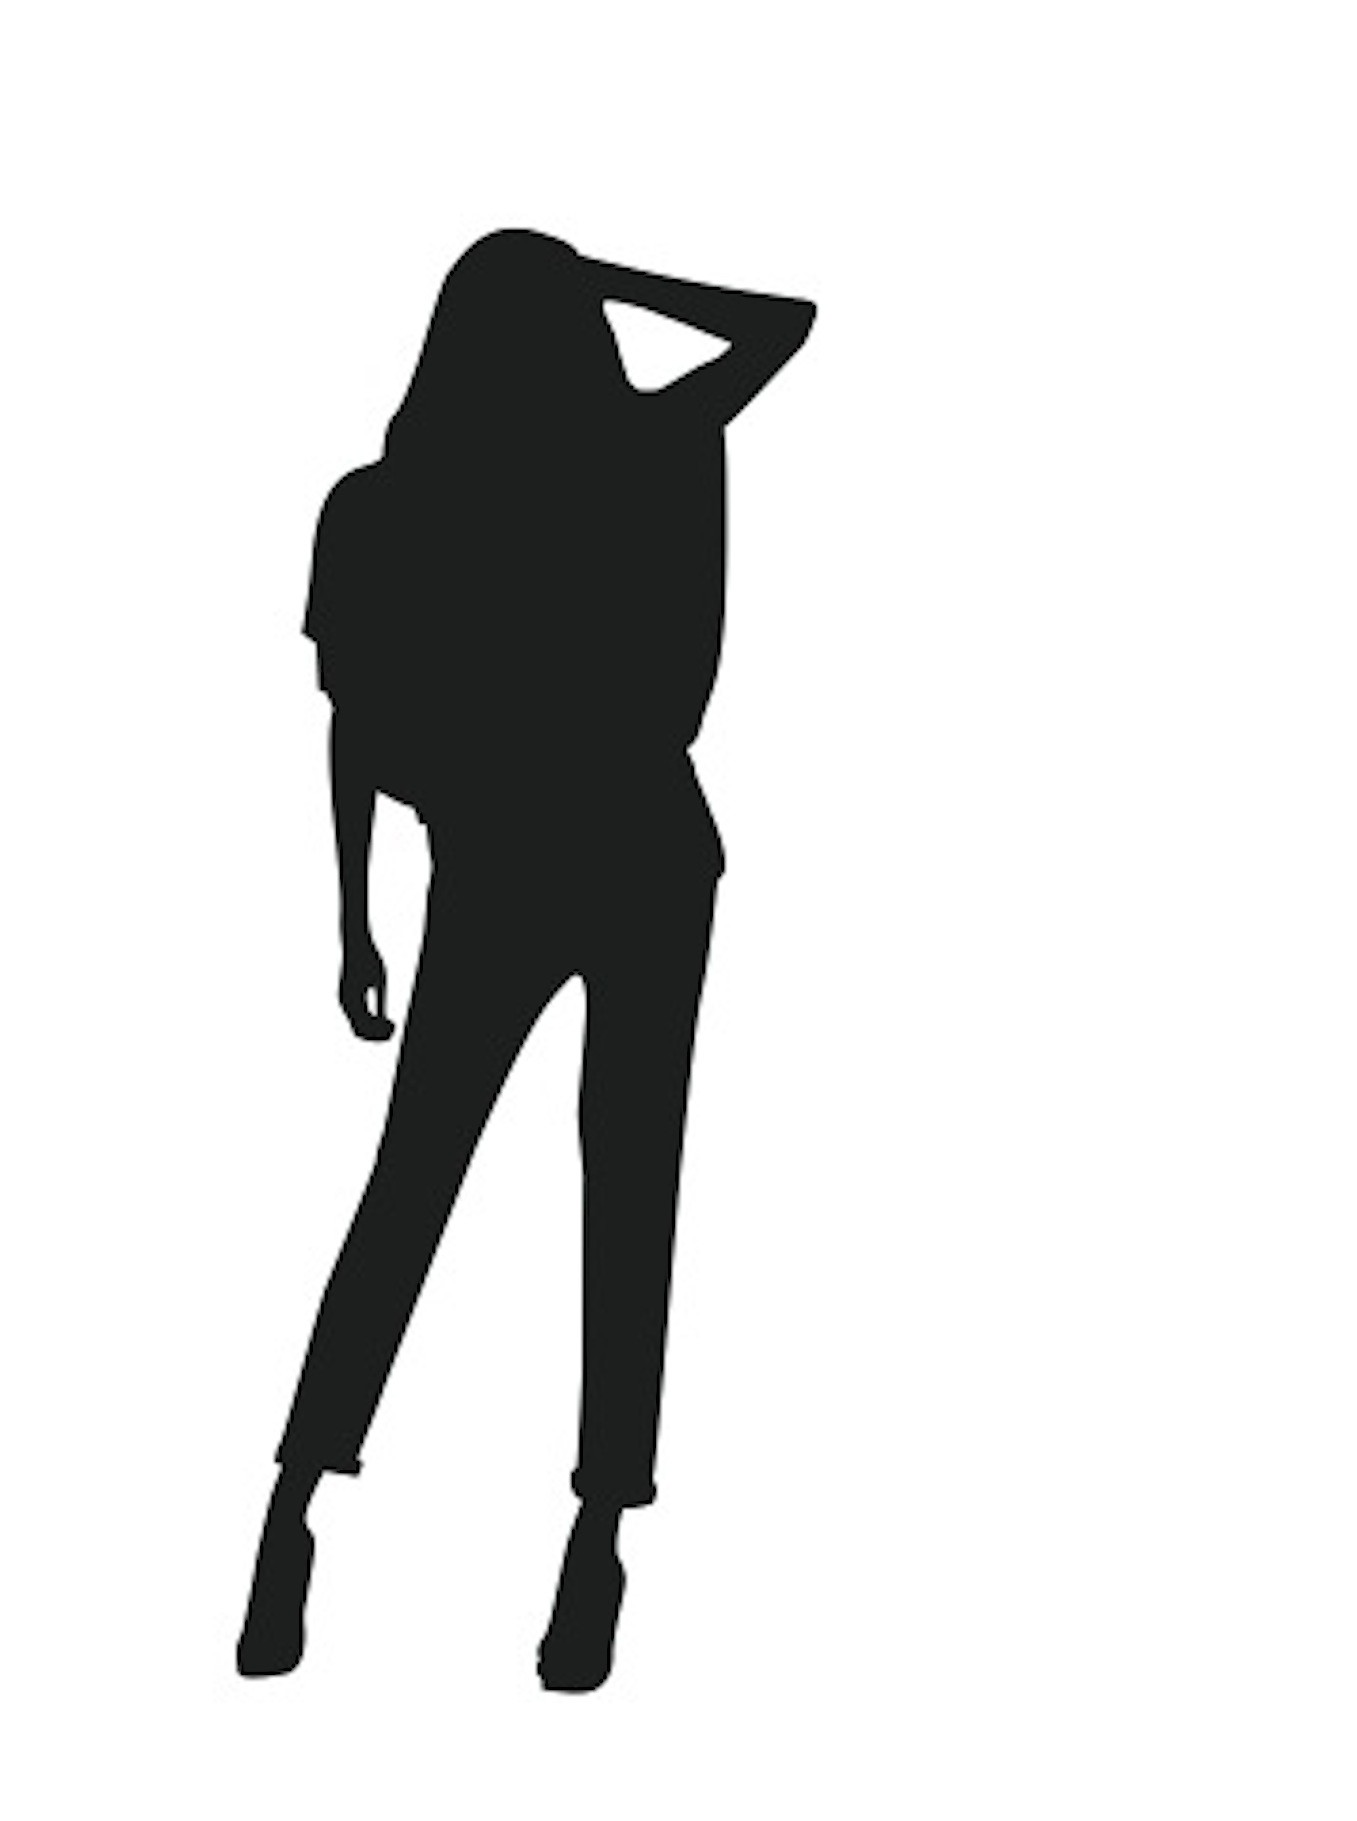 1357x1821 Fashion Through The Ages Which Silhouette Were You Meant To Have